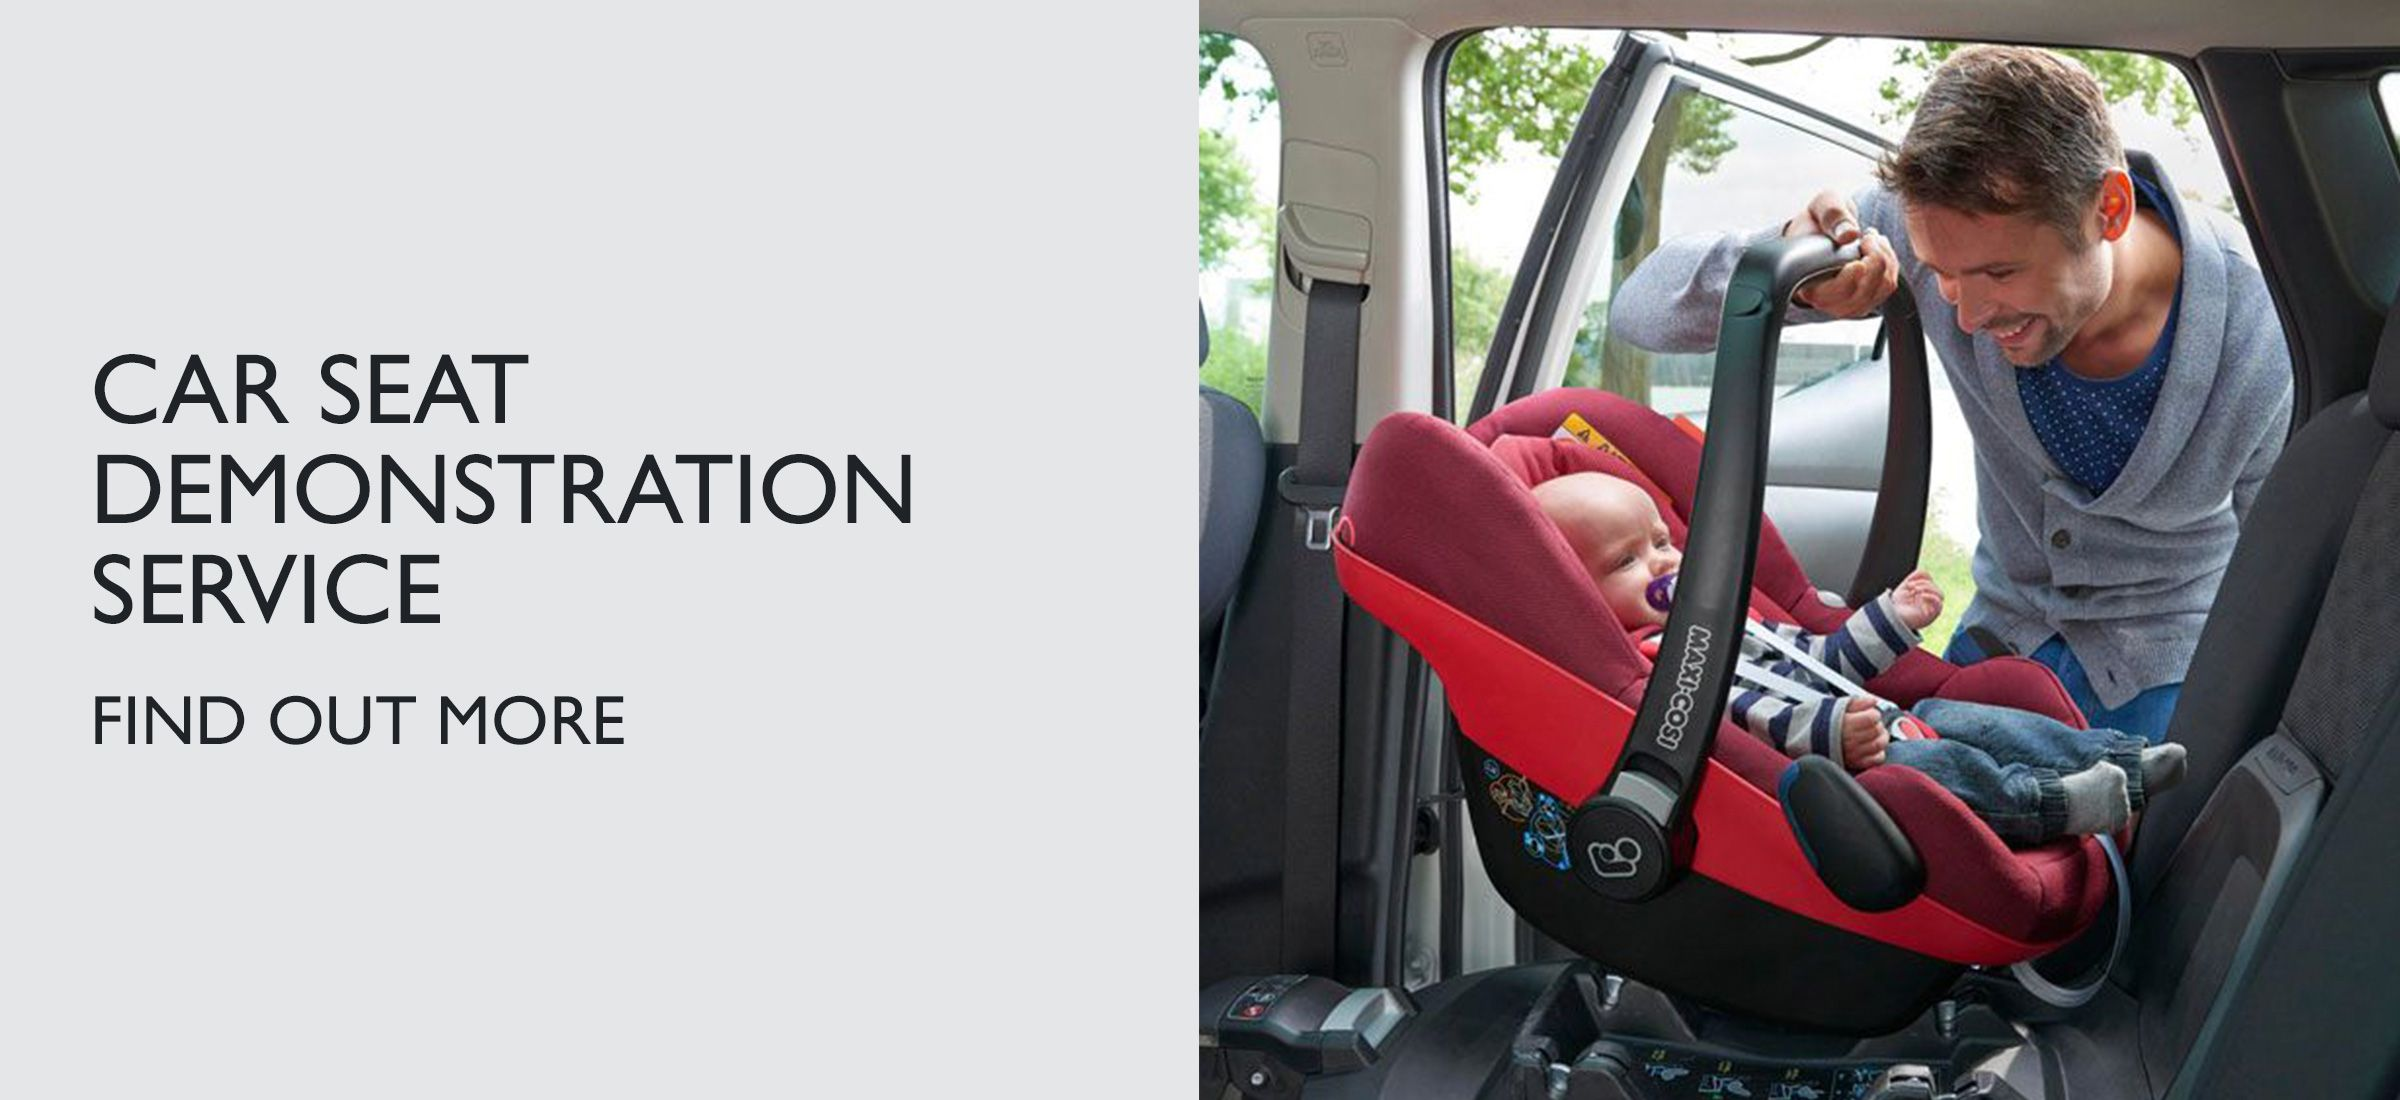 CAR SEAT DEMONSTRATION SERVICE